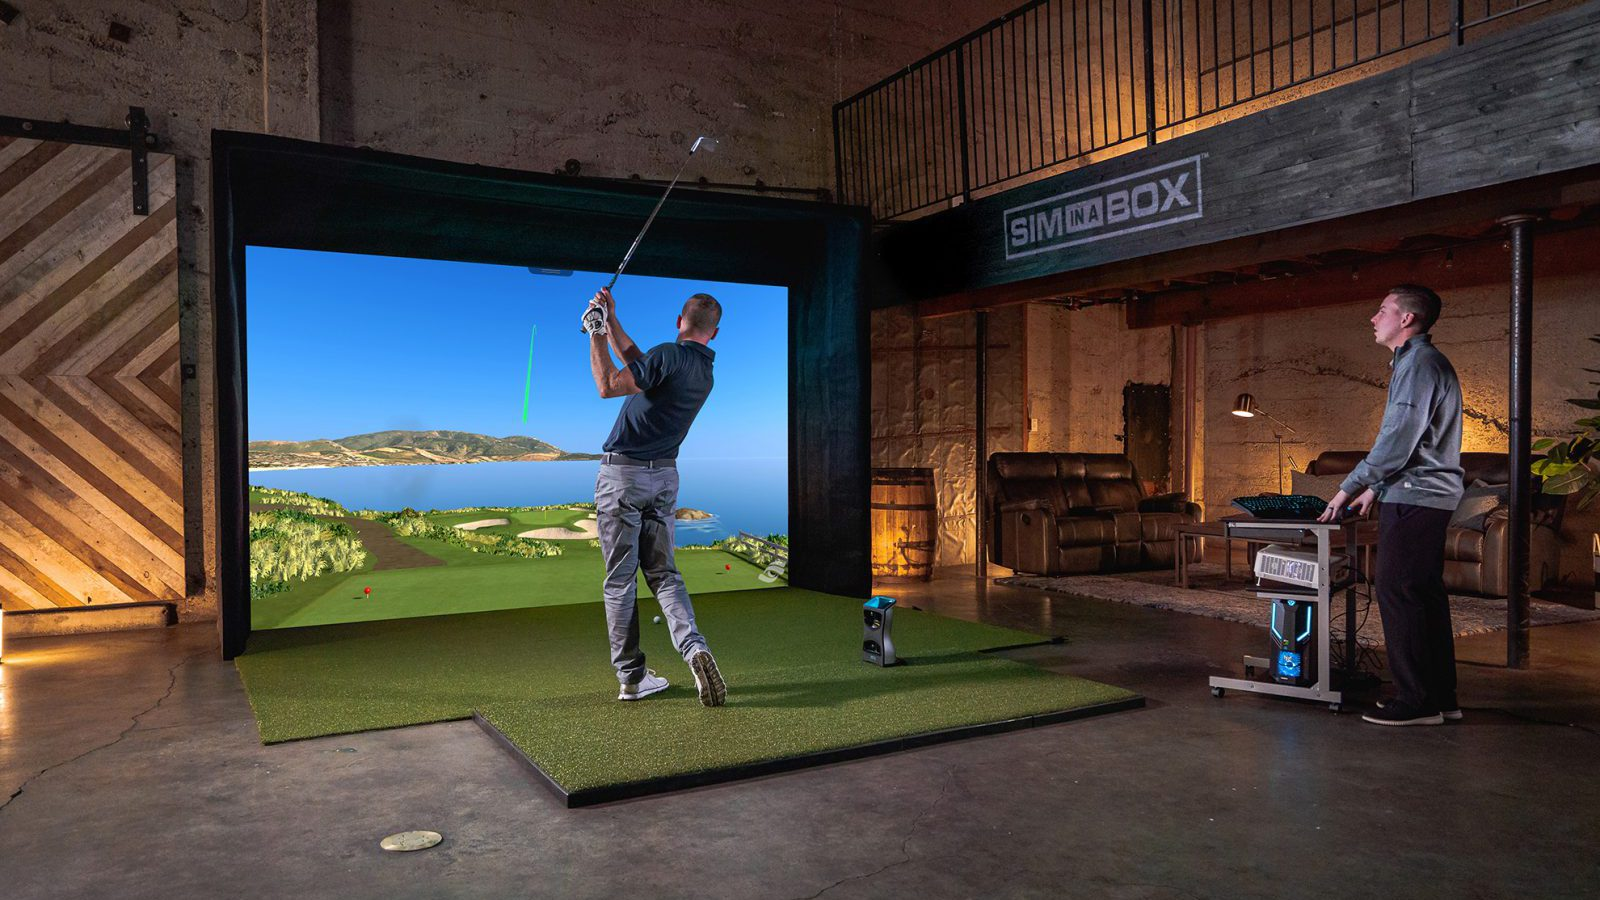 Golfer swings club indoors using the foresight performance analysis technology while expert looks on